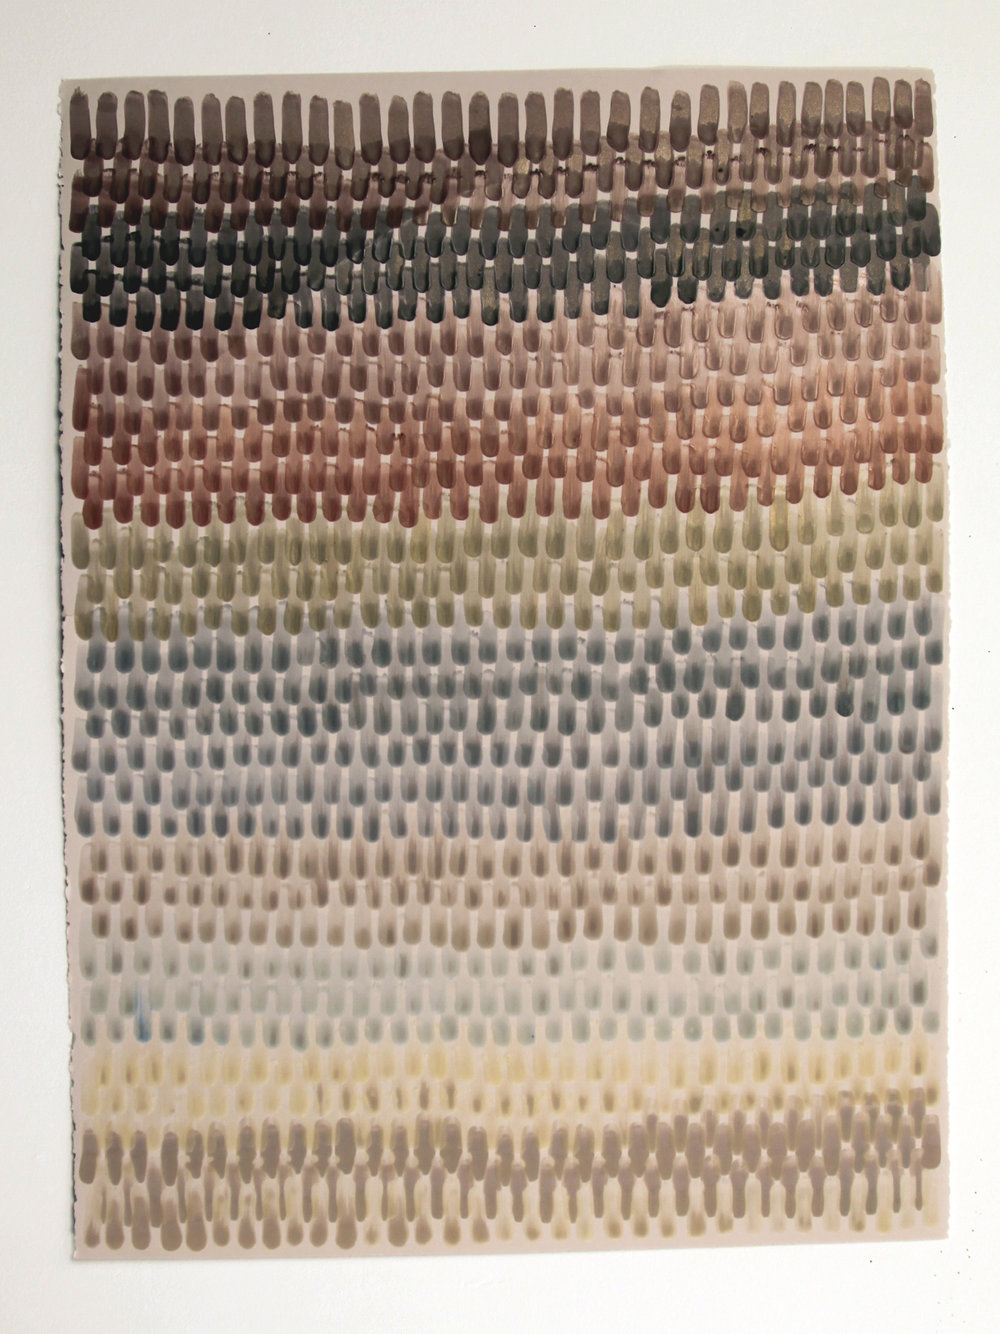 Serape 2, 2016, Encaustic on acid-free paper, 30 x 22-1/2 inches